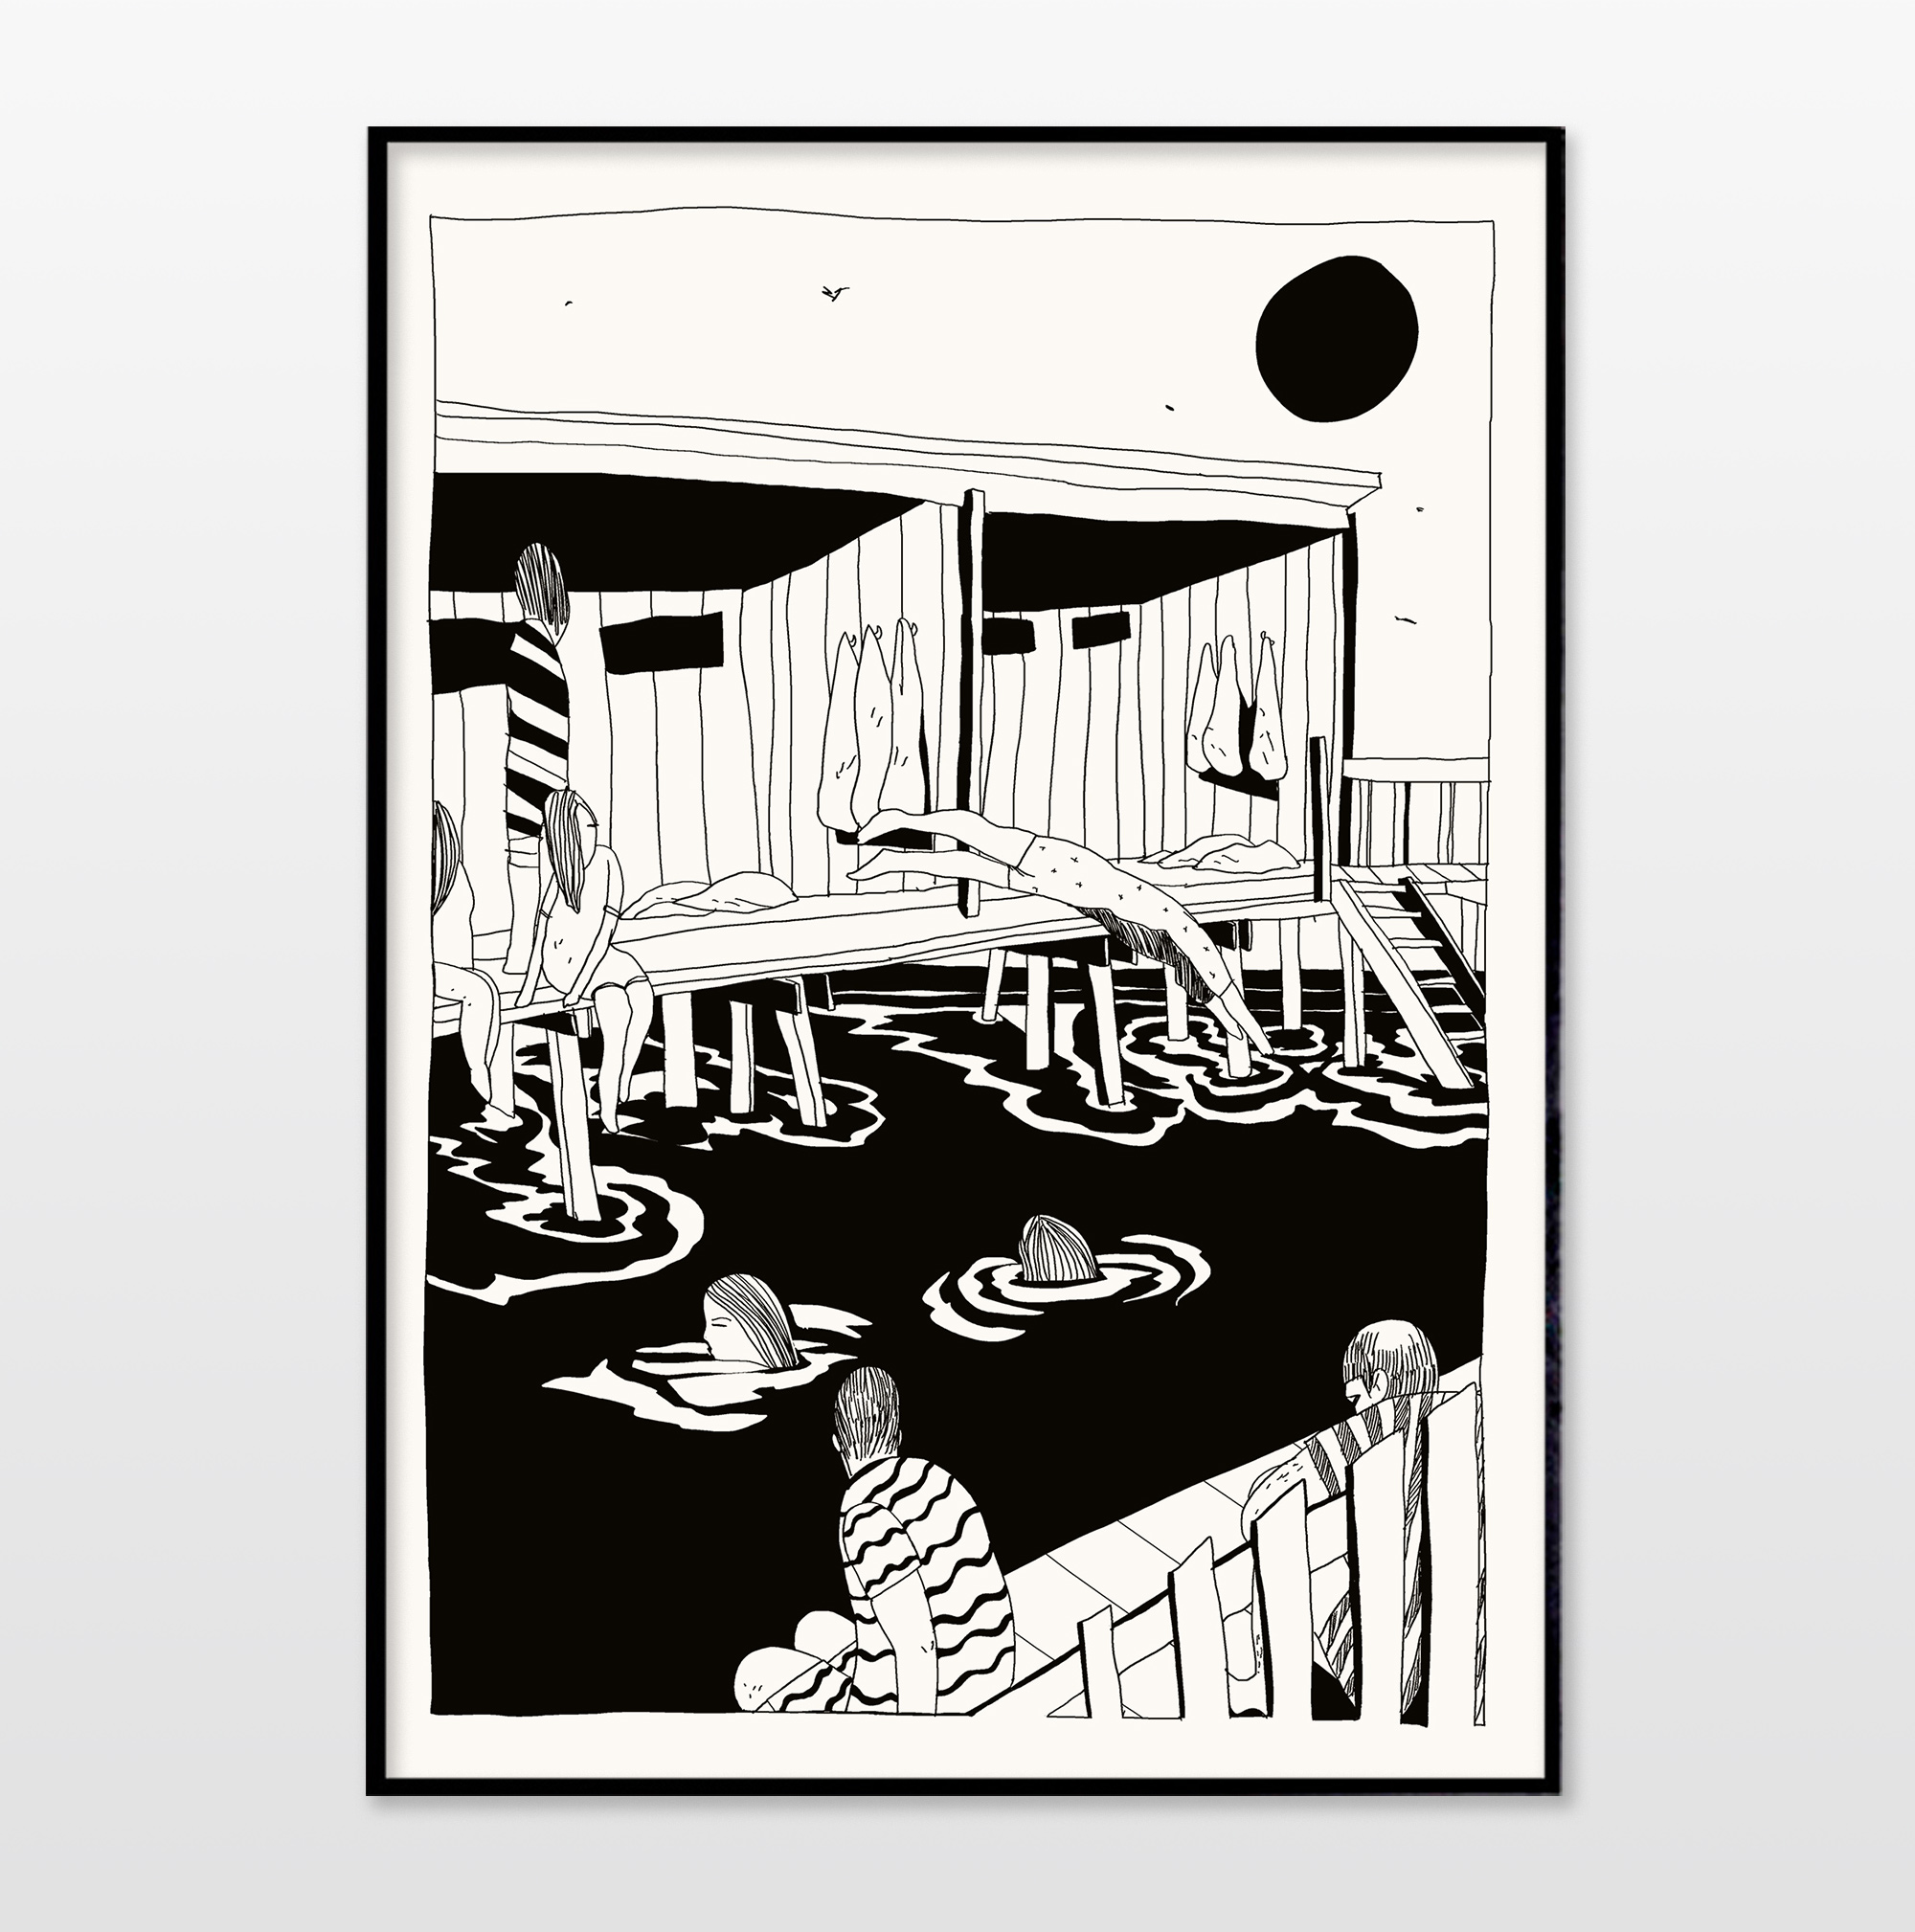 posters, giclee, graphical, illustrative, monochrome, portraiture, architecture, bodies, nature, seasons, black, white, ink, paper, beach, contemporary-art, copenhagen, danish, decorative, design, interior, interior-design, love, modern, modern-art, nordic, posters, scandinavien, water, Buy original high quality art. Paintings, drawings, limited edition prints & posters by talented artists.